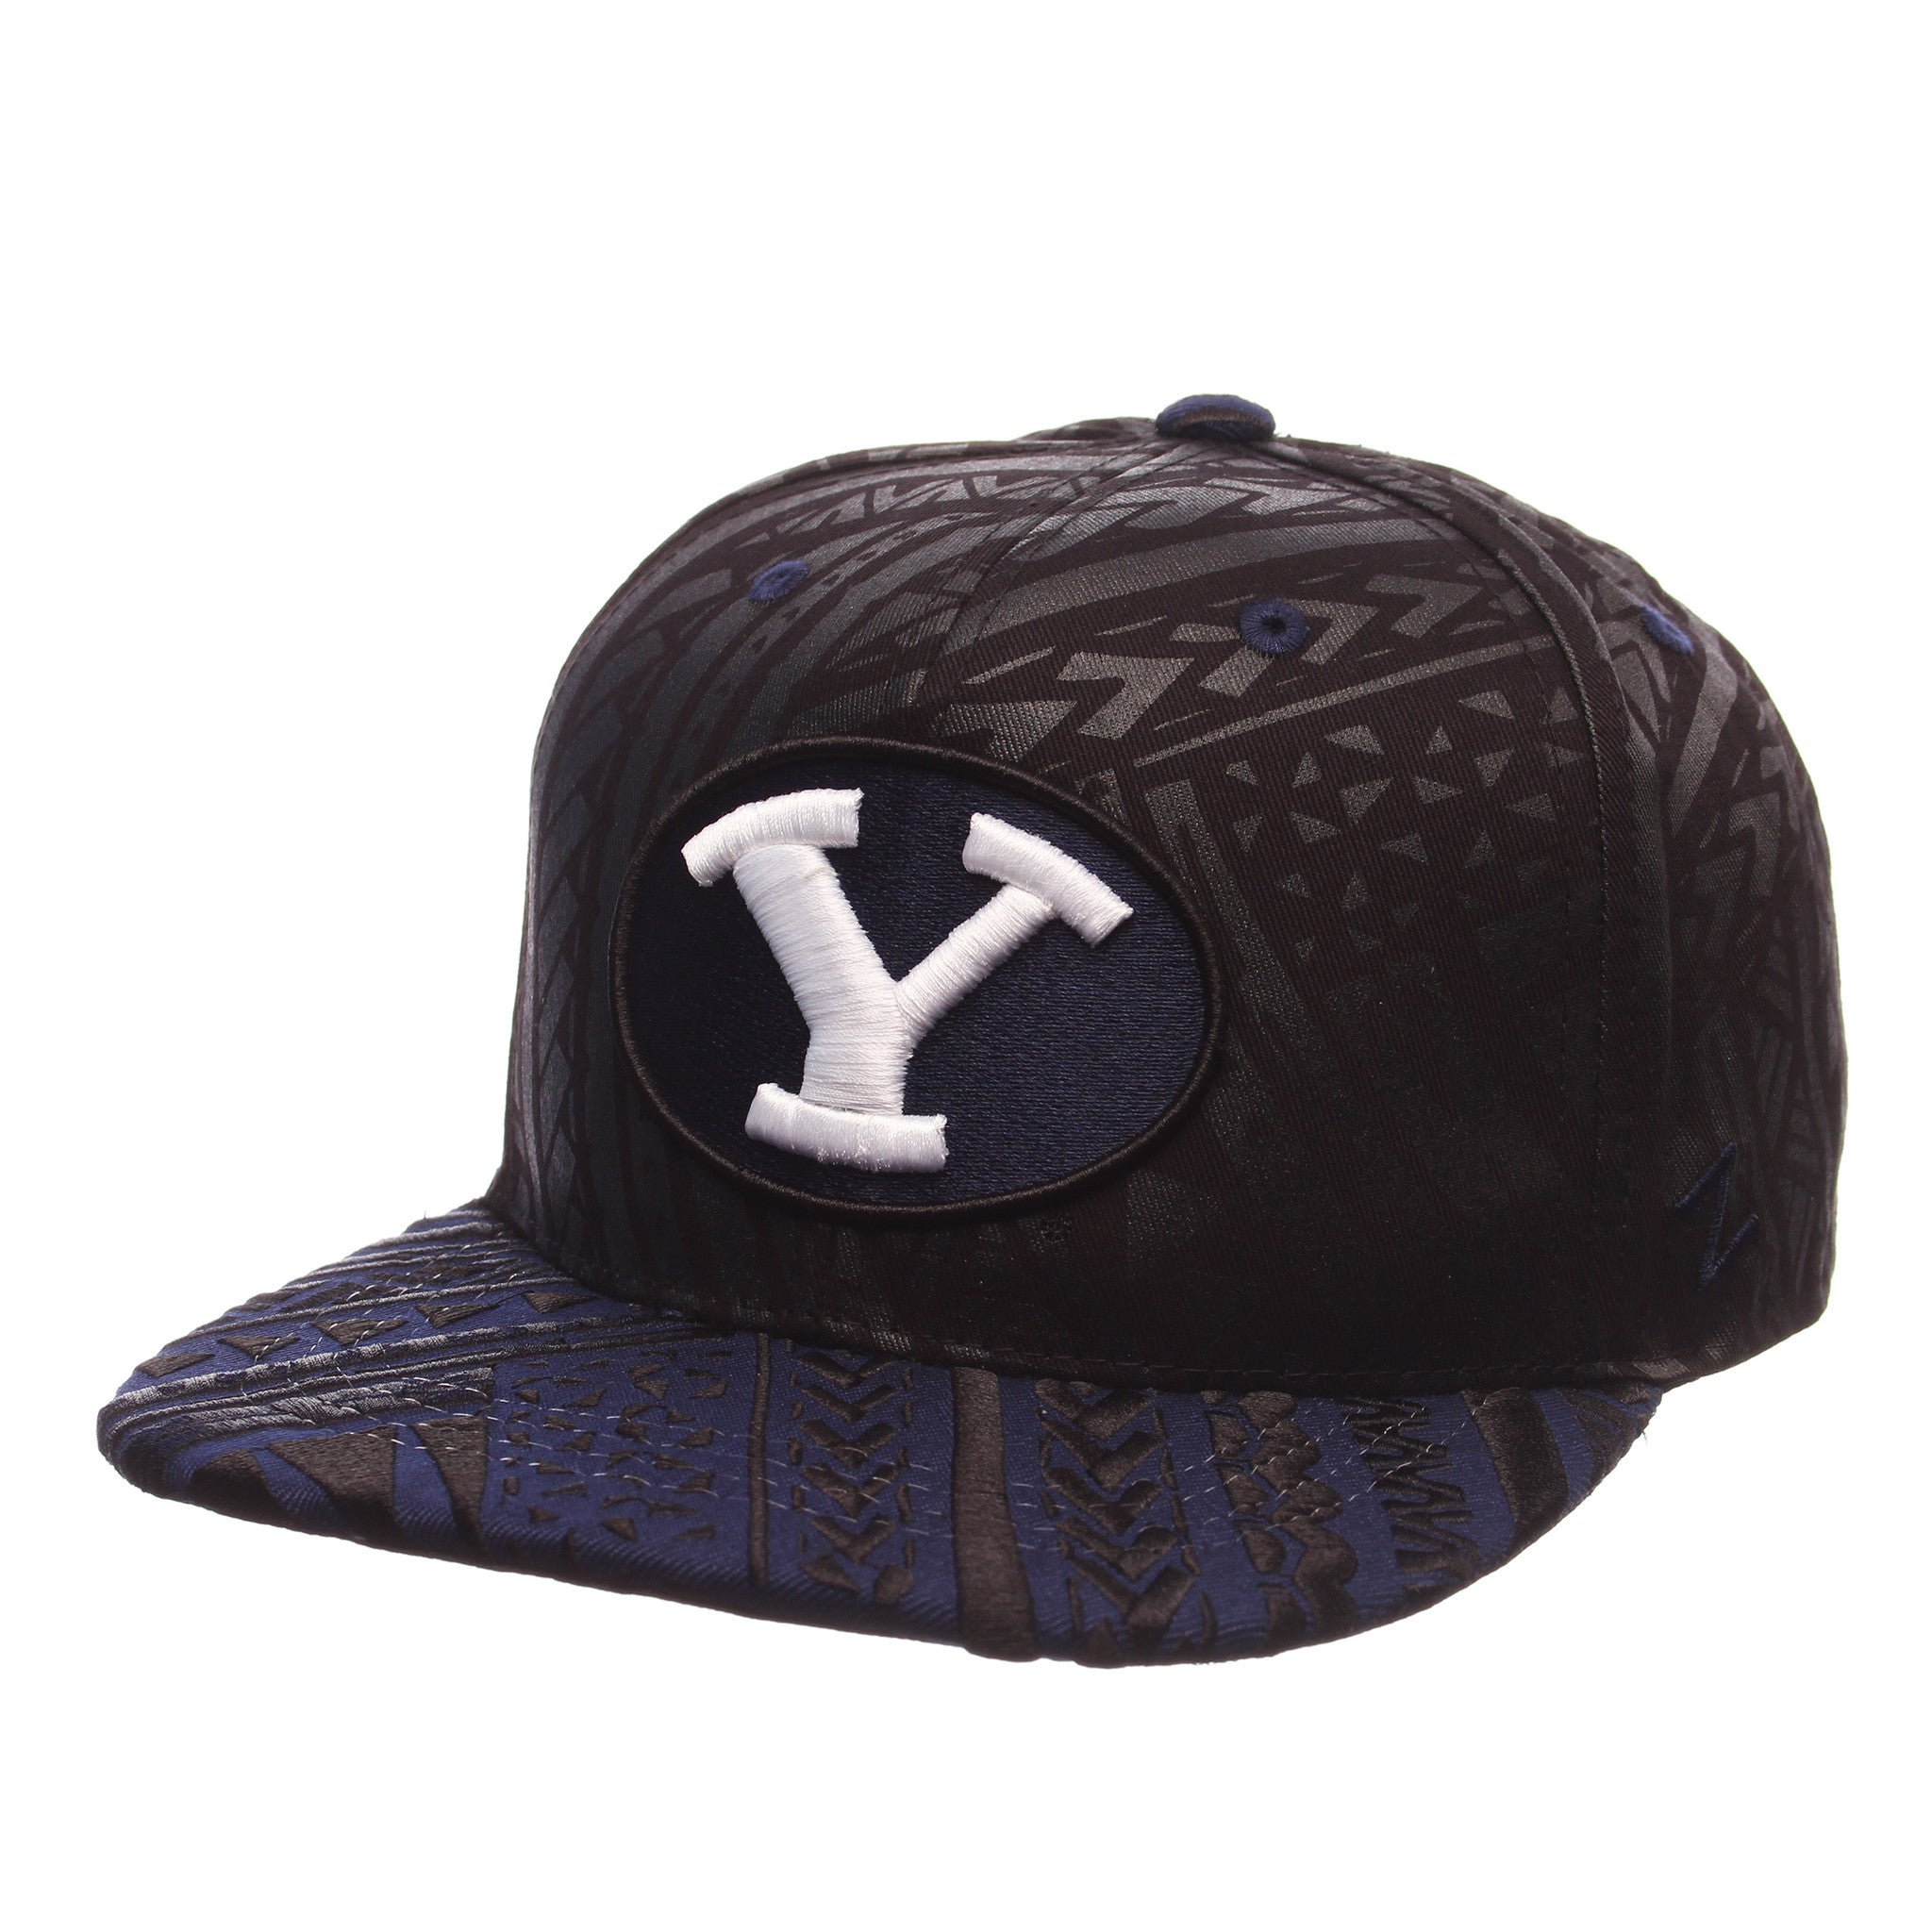 Brigham Young University Kahuku 32/5 (High) (Y OVAL) Black 100% Cotton Twill Adjustable hats by Zephyr